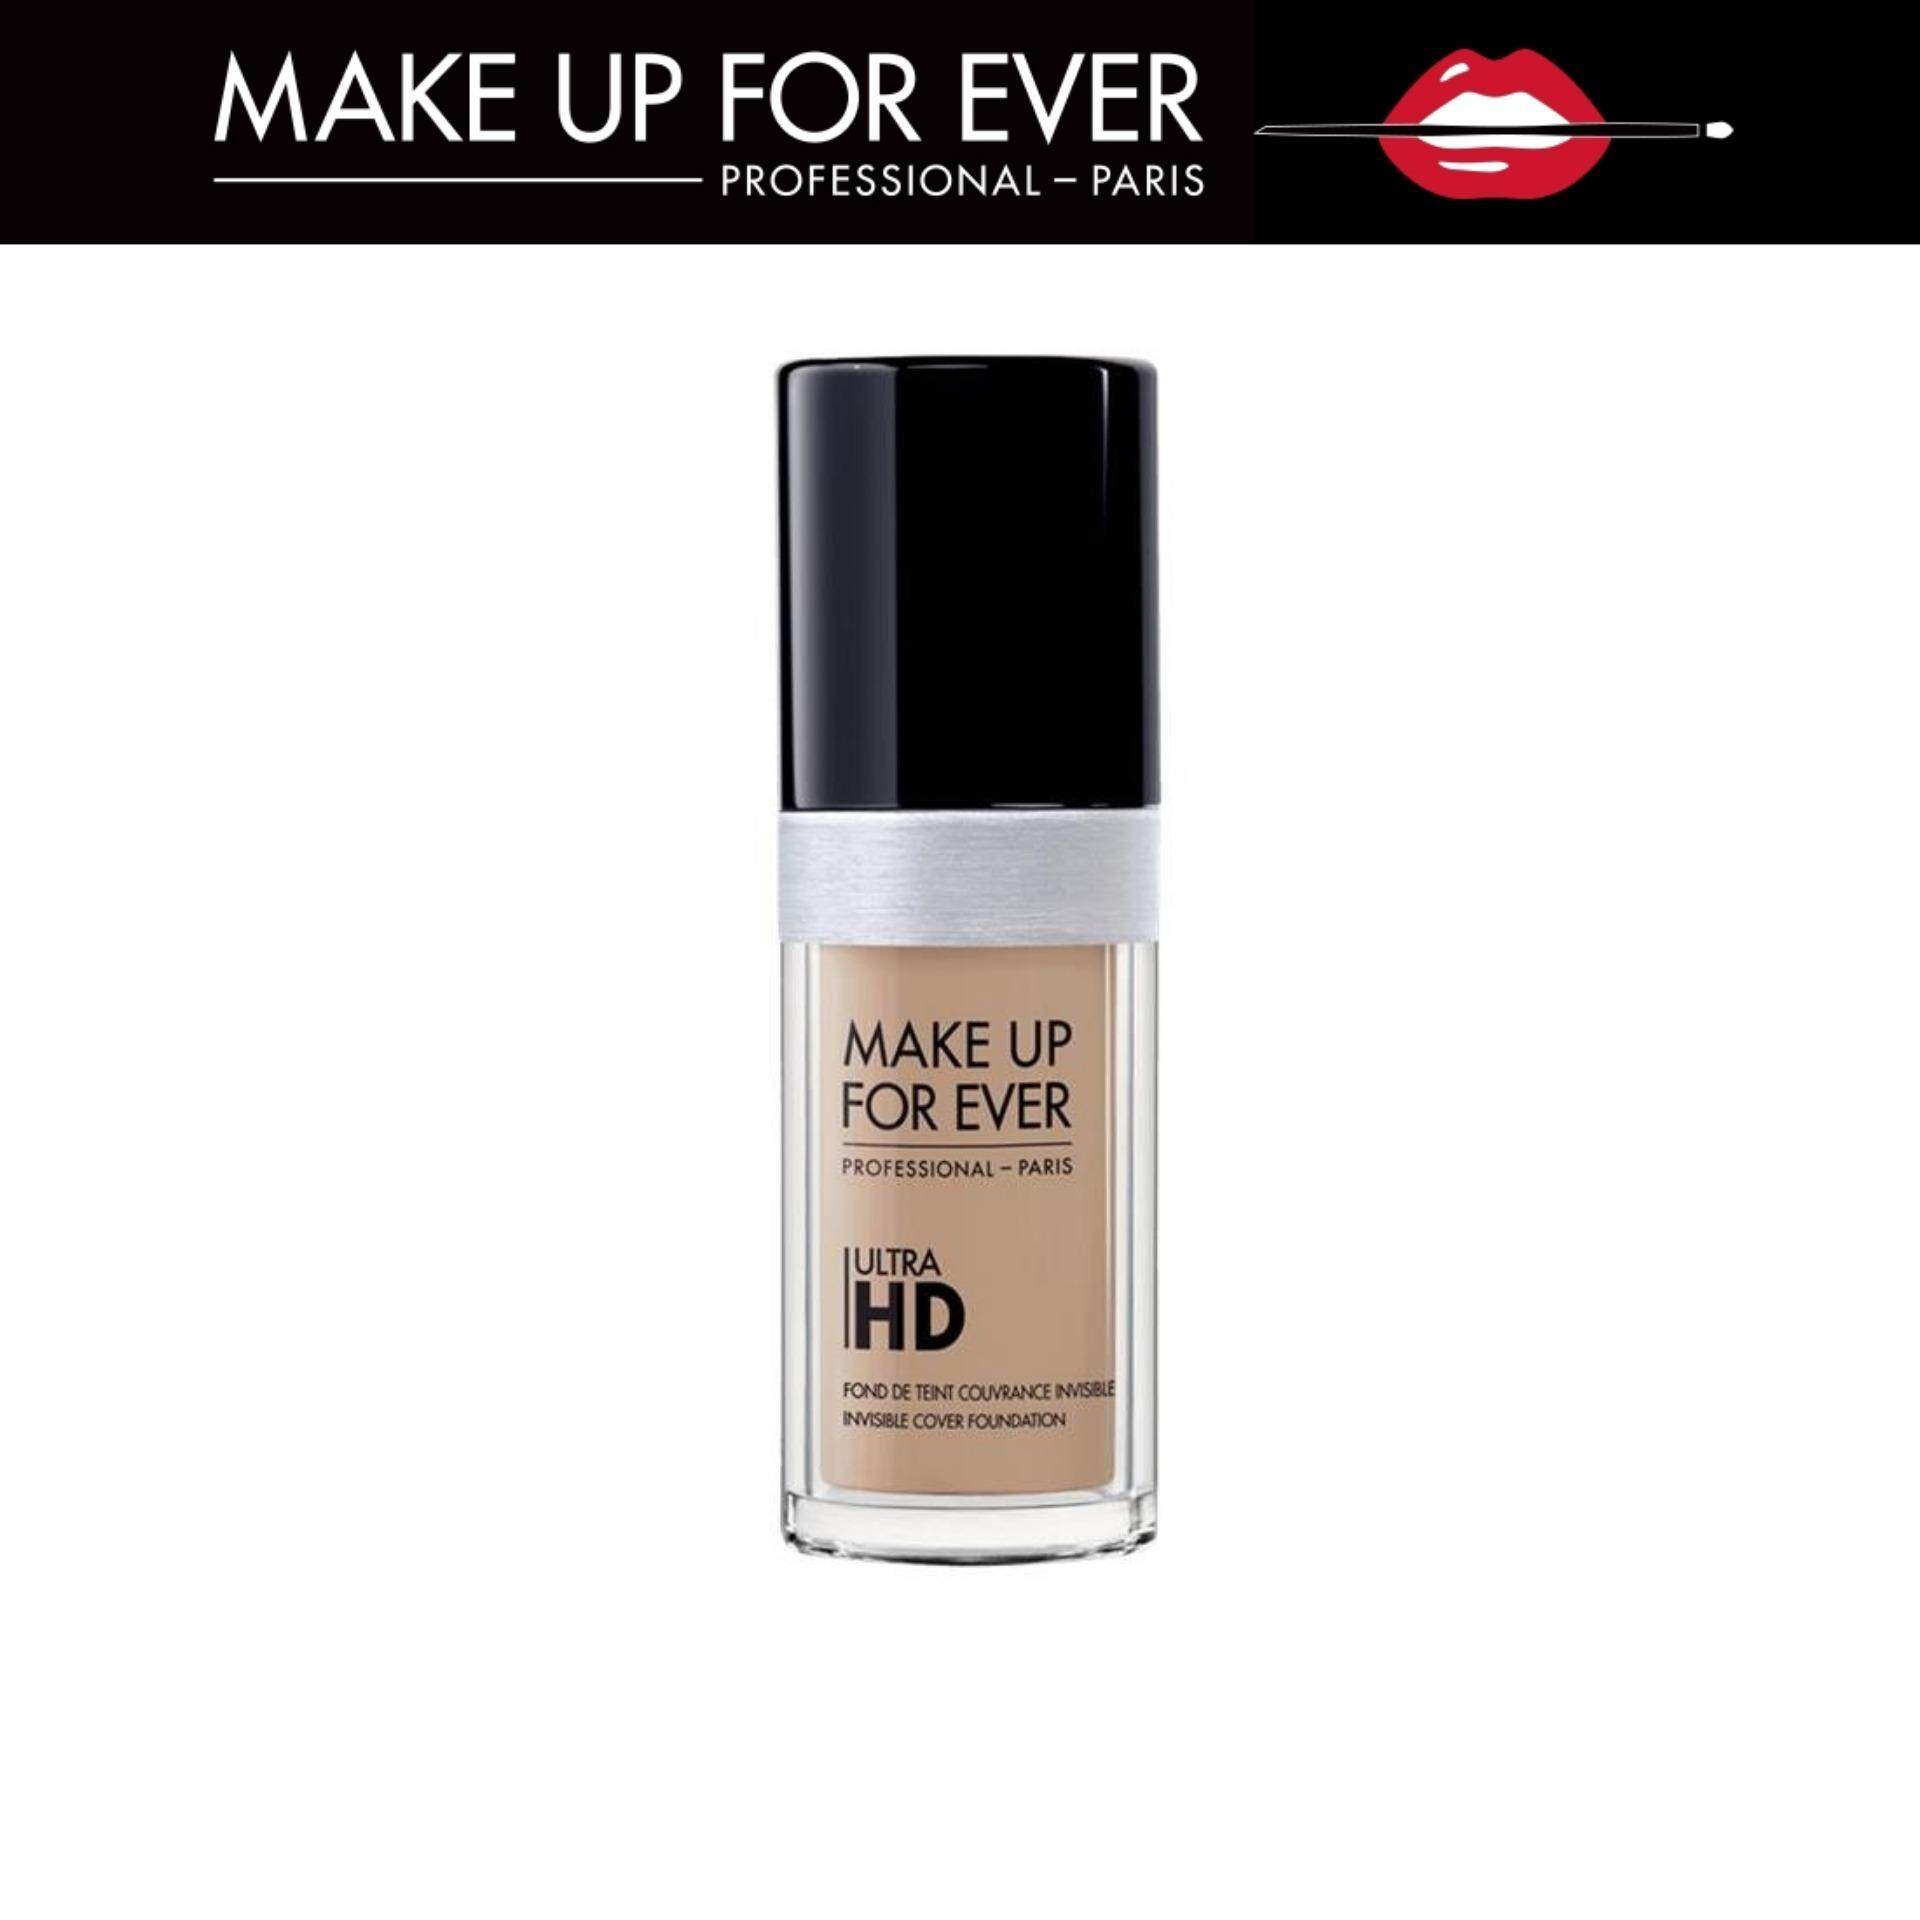 MAKE UP FOR EVER -  ULTRA HD FOUNDATION - Fluid Foundation